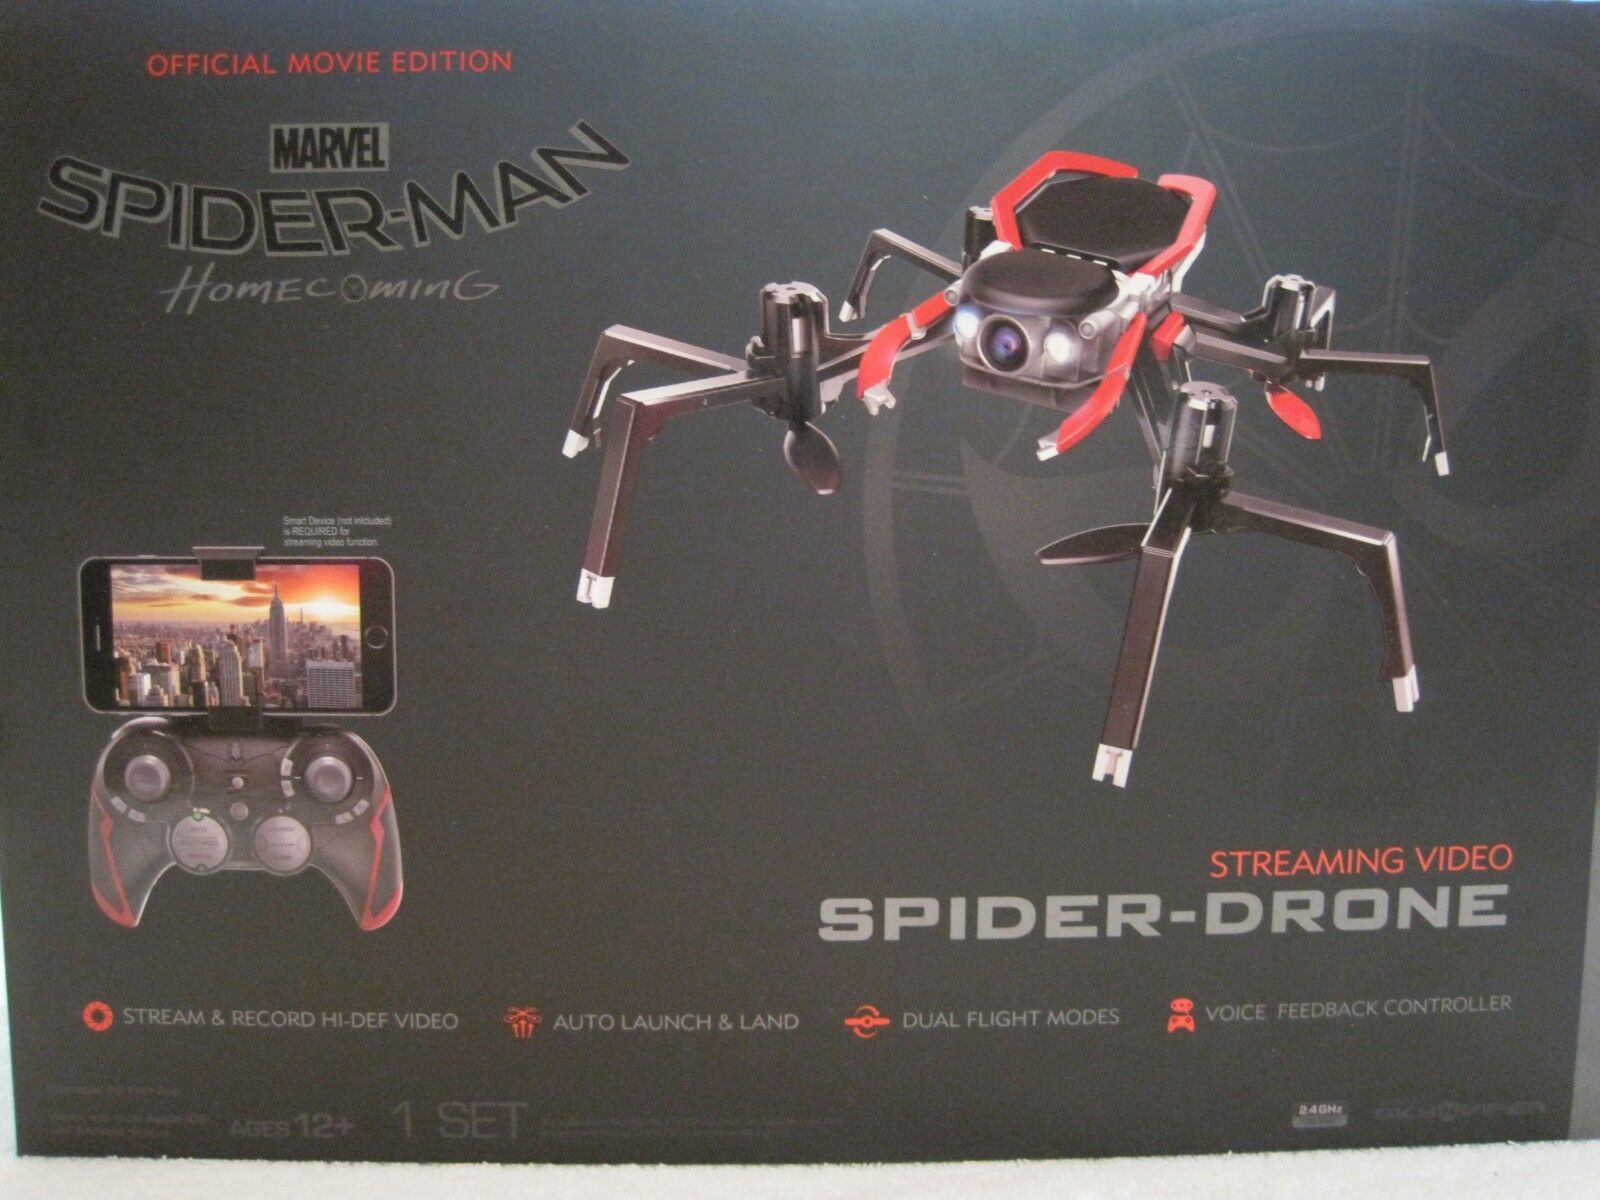 2017 MARVEL SPIDERMAN HOMECOMING STREAMING VIDEO SPIDER DRONE--NEW--UNOPENED